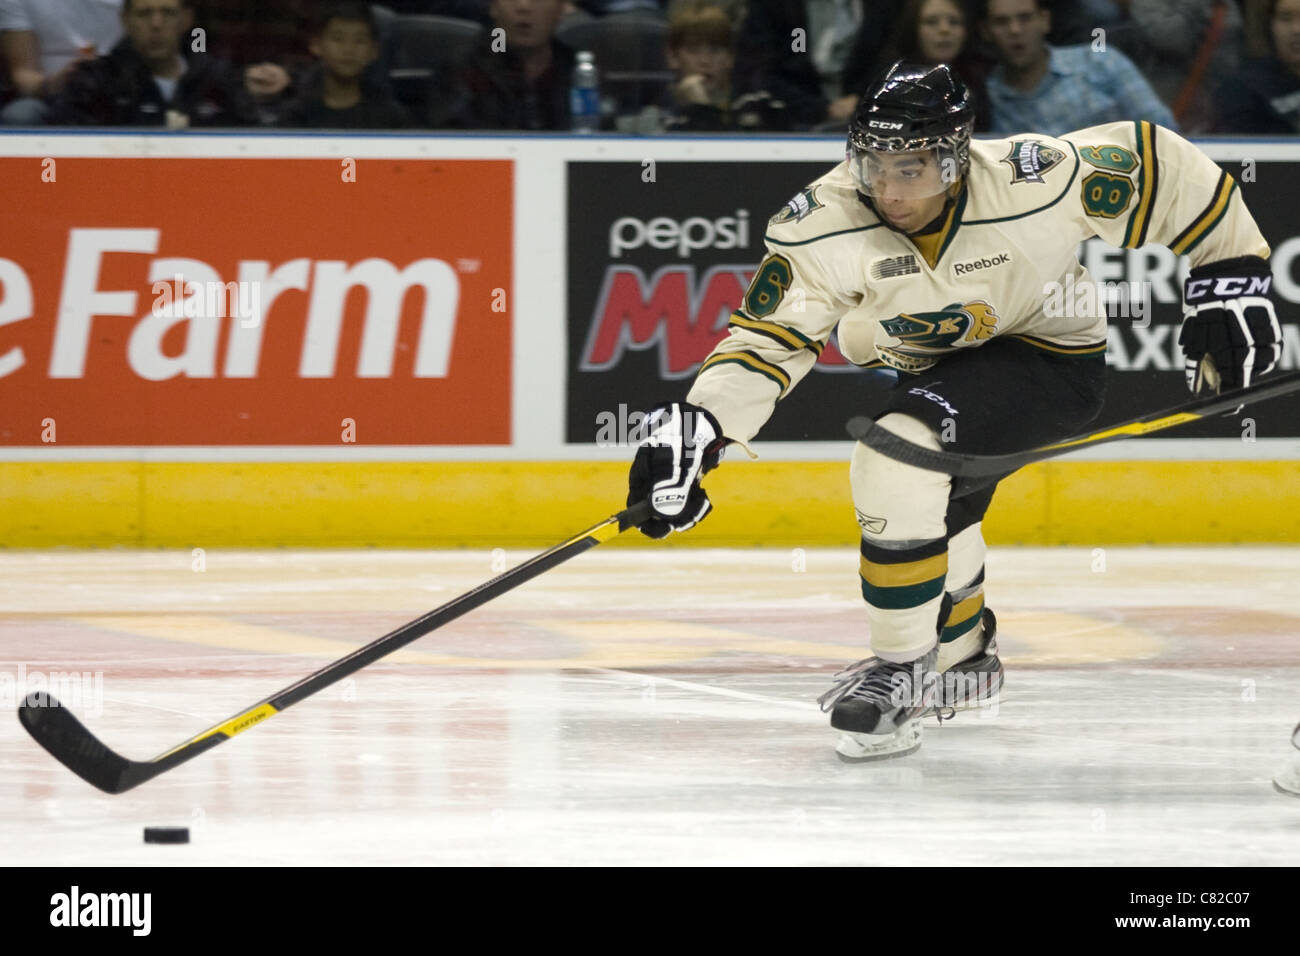 Ohl Stock Photos & Ohl Stock Images - Alamy